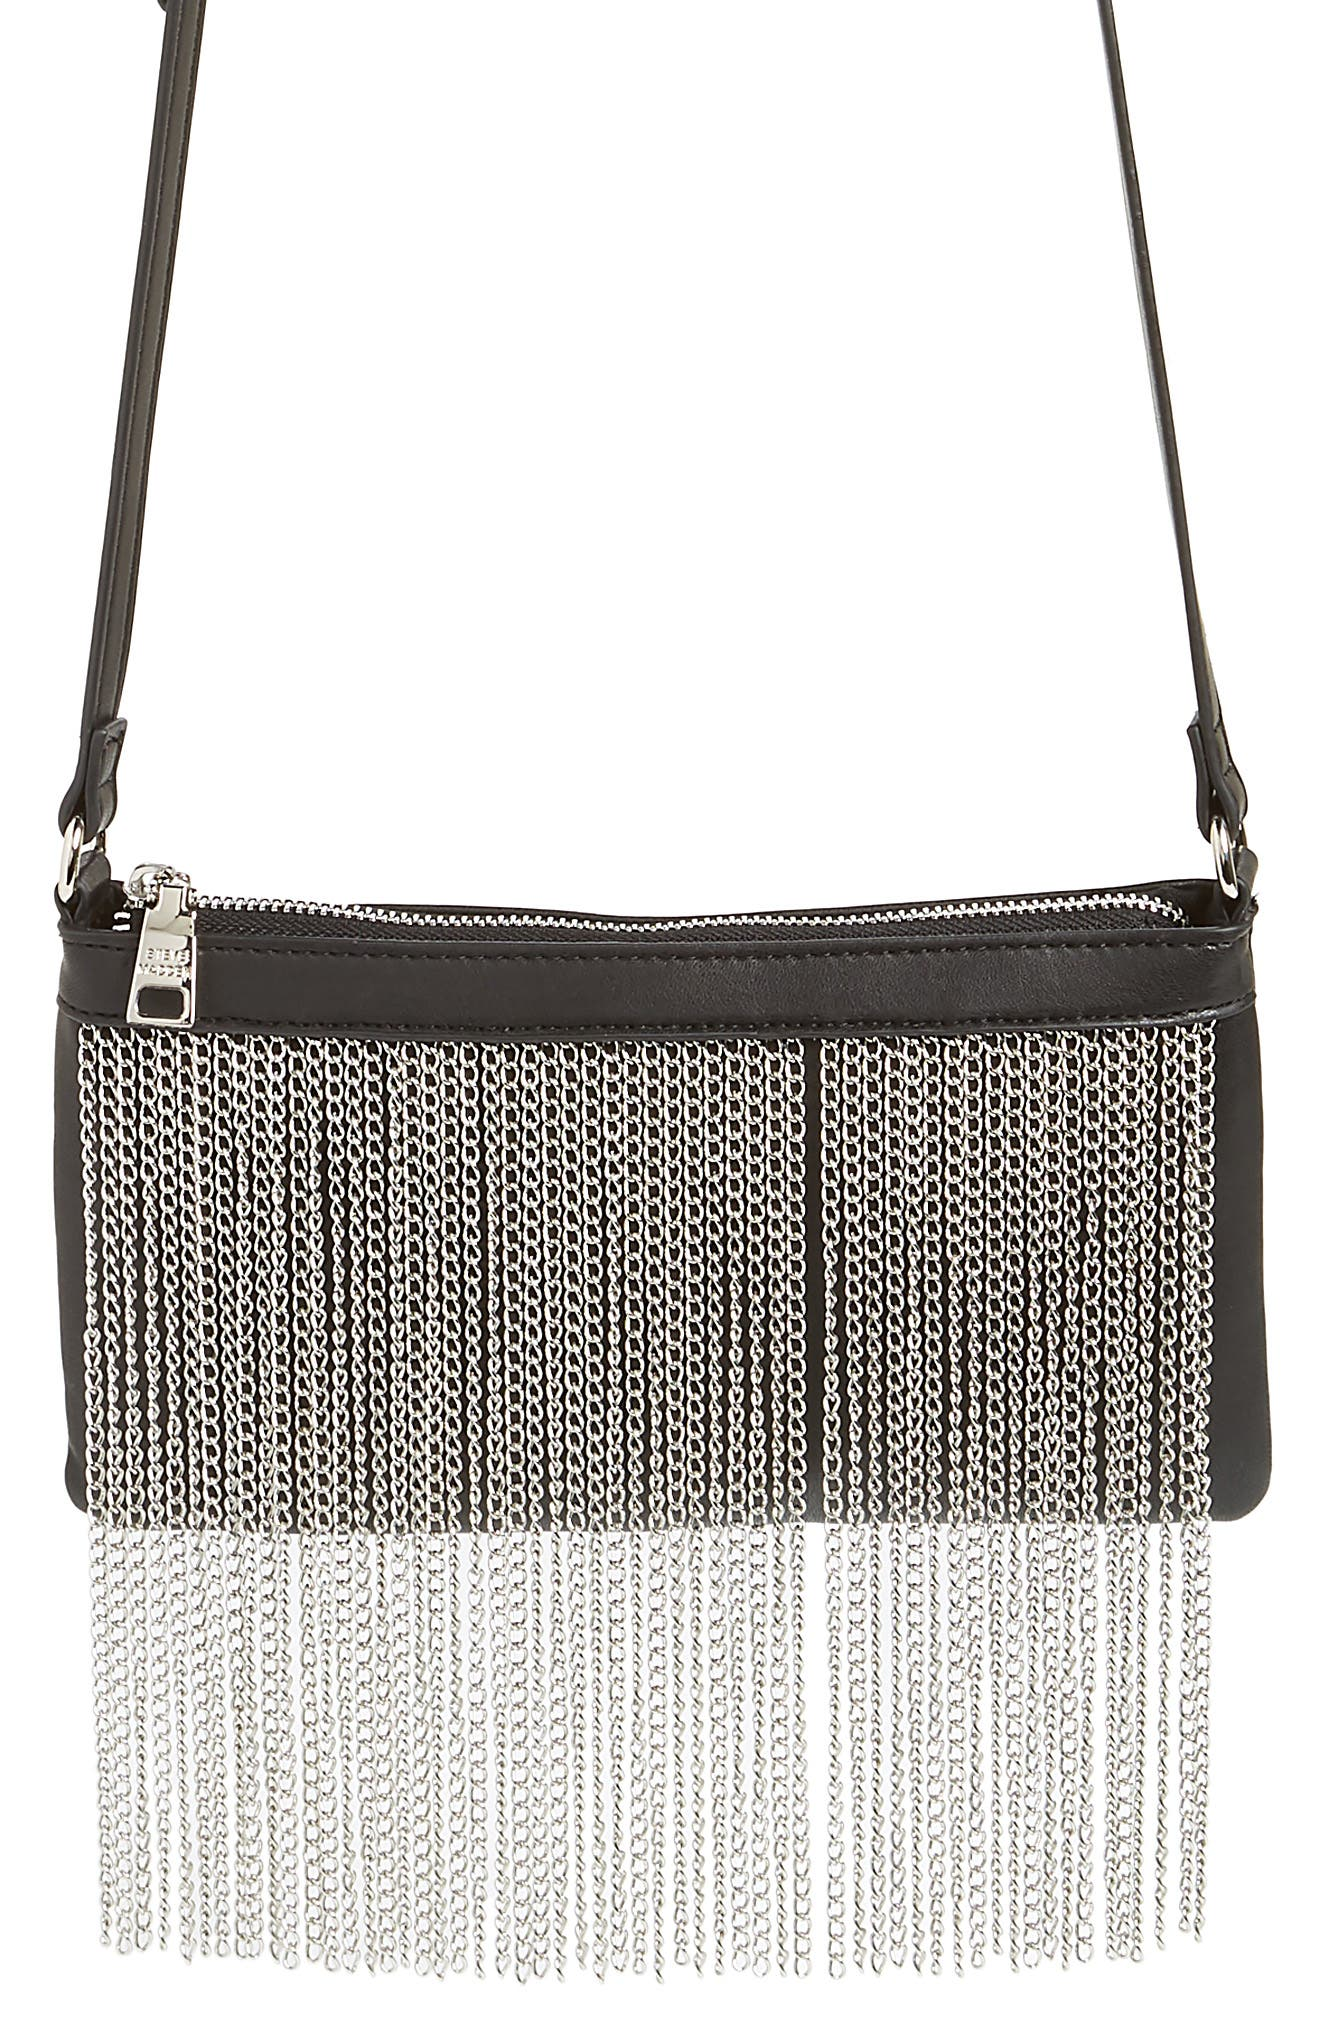 Chain Fringe Crossbody Bag,                         Main,                         color, Black